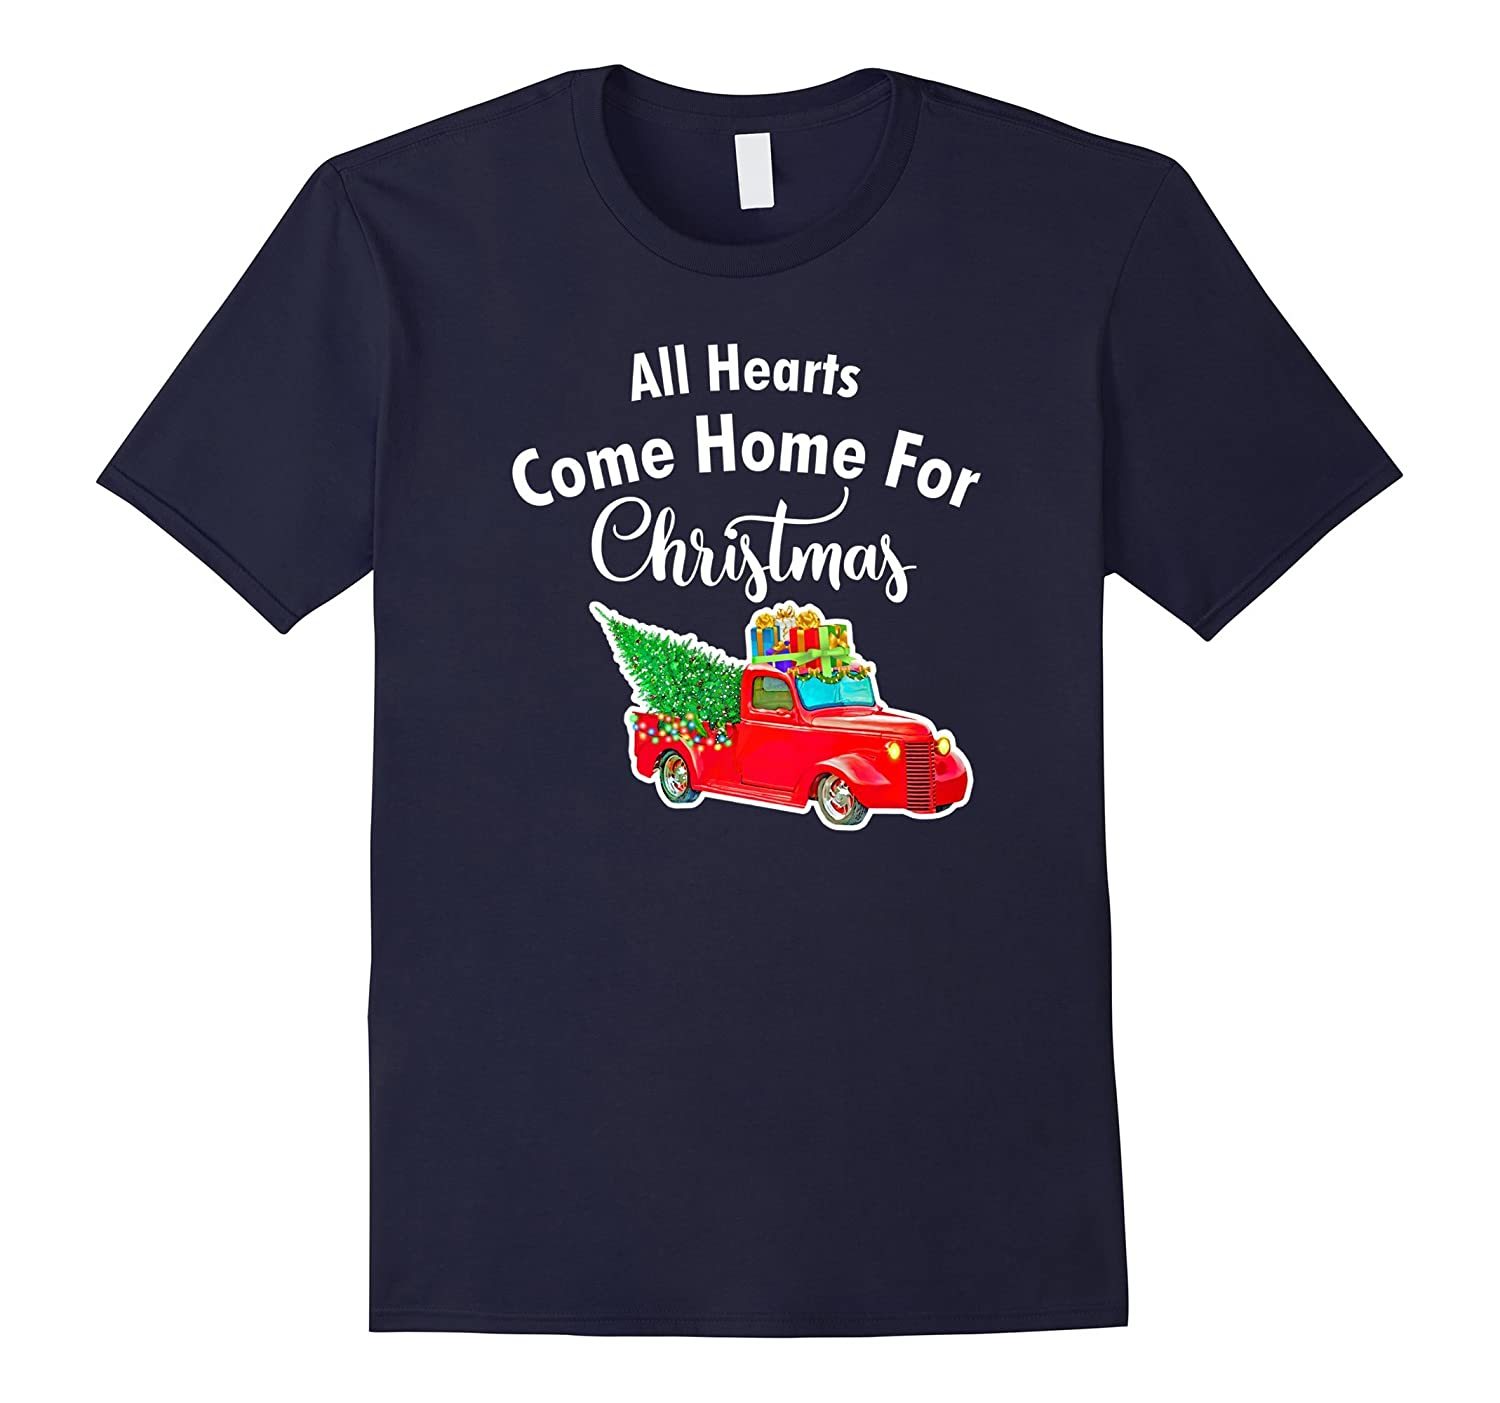 All Hearts Come Home for Christmas-T-Shirt